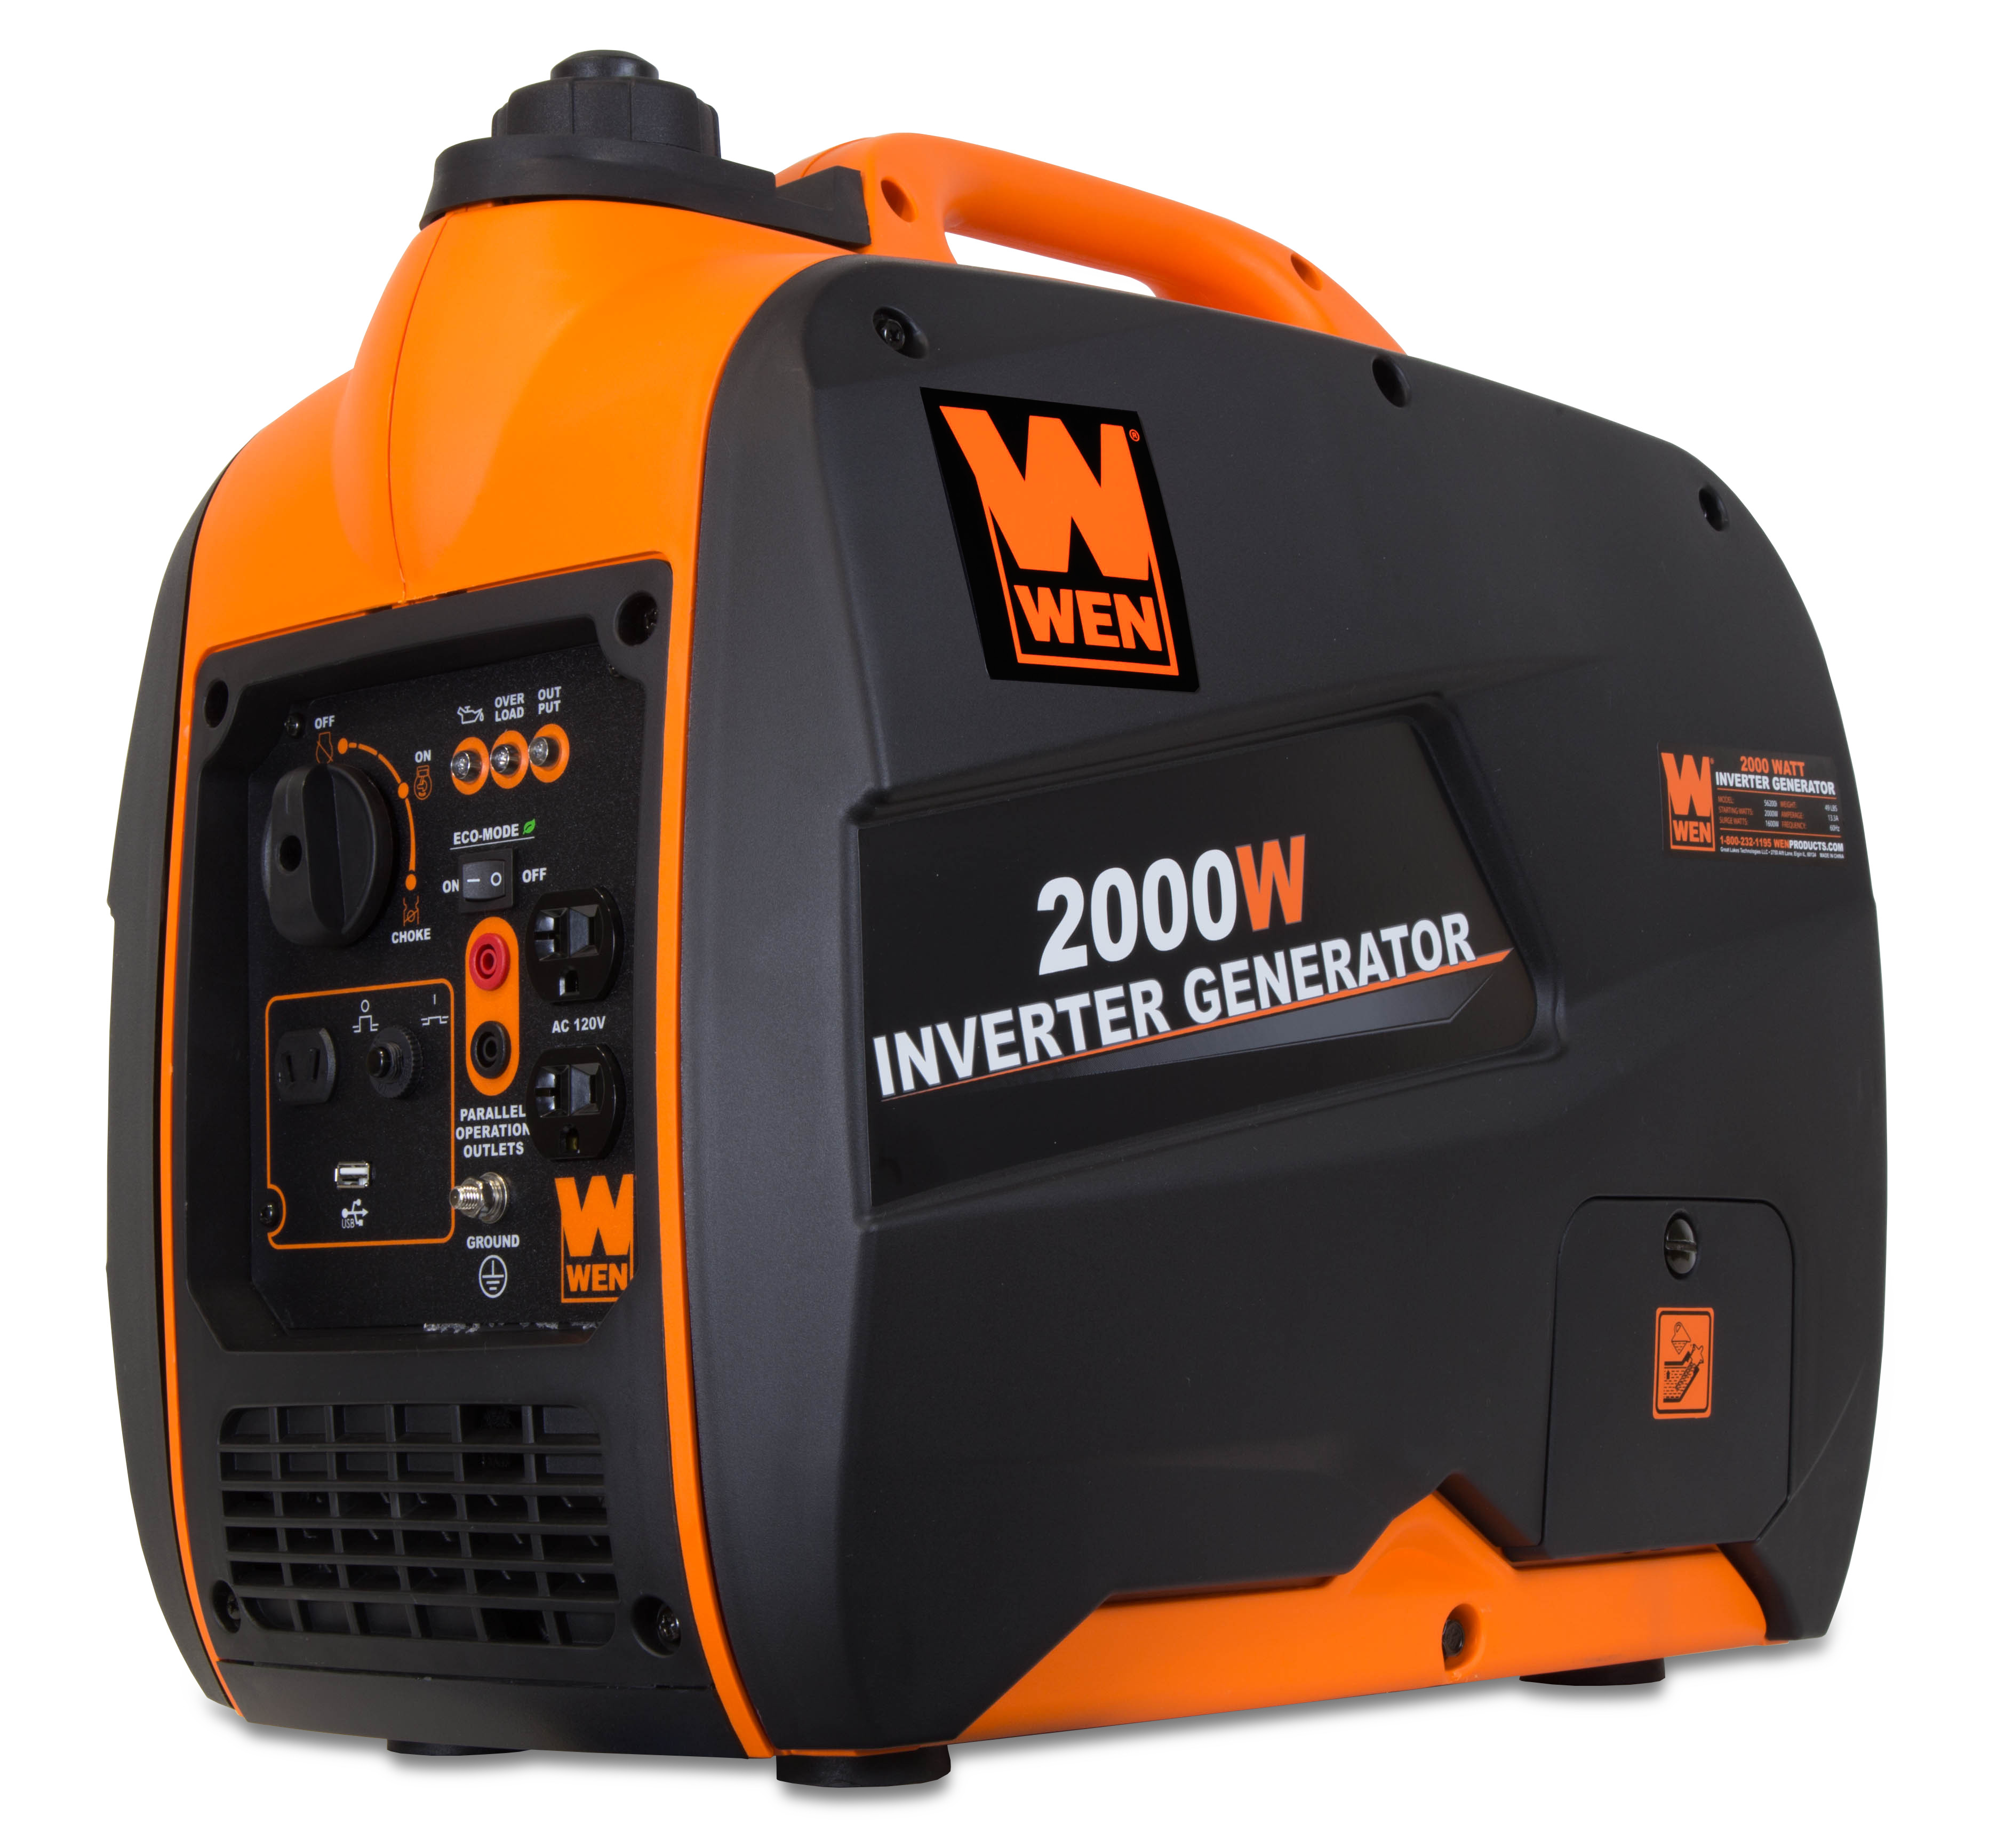 WEN 2000W Inverter Generator, CARB Compliant